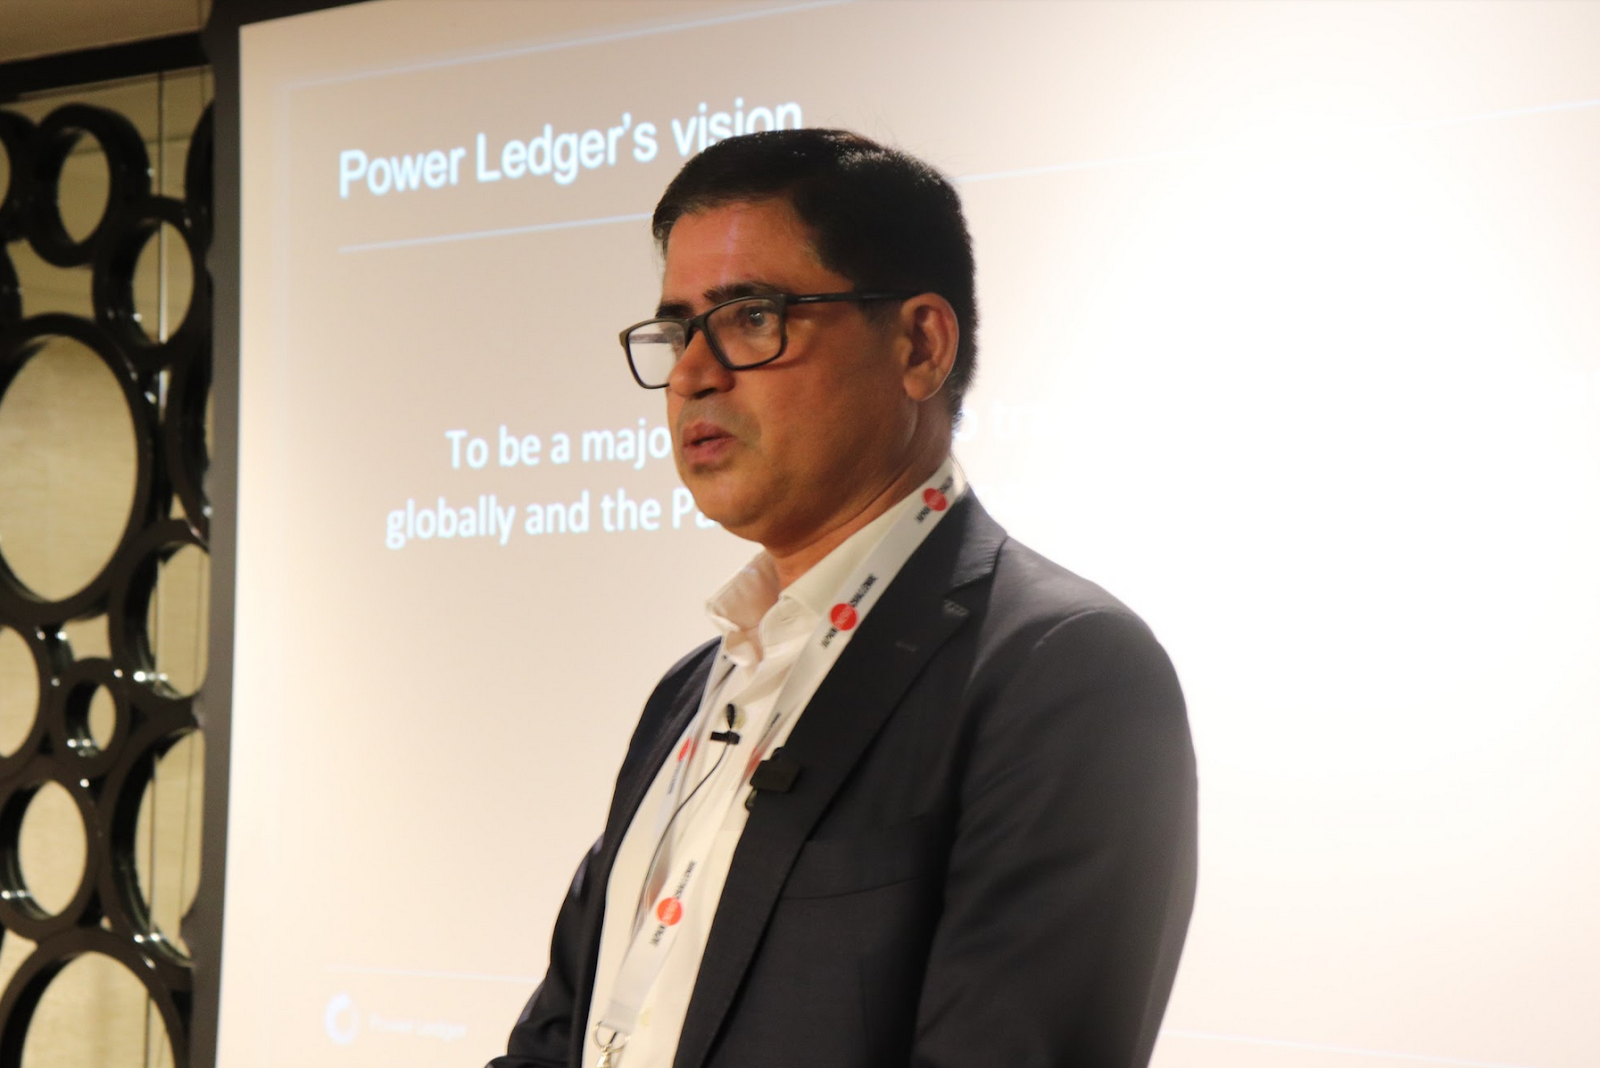 Power Ledger 's Head of Business Development Vinod Tiwari presenting at JEC 2019. Power Ledger designed a blockchain-enabled energy trading platform that can be used to buy and sell electricity in real time.